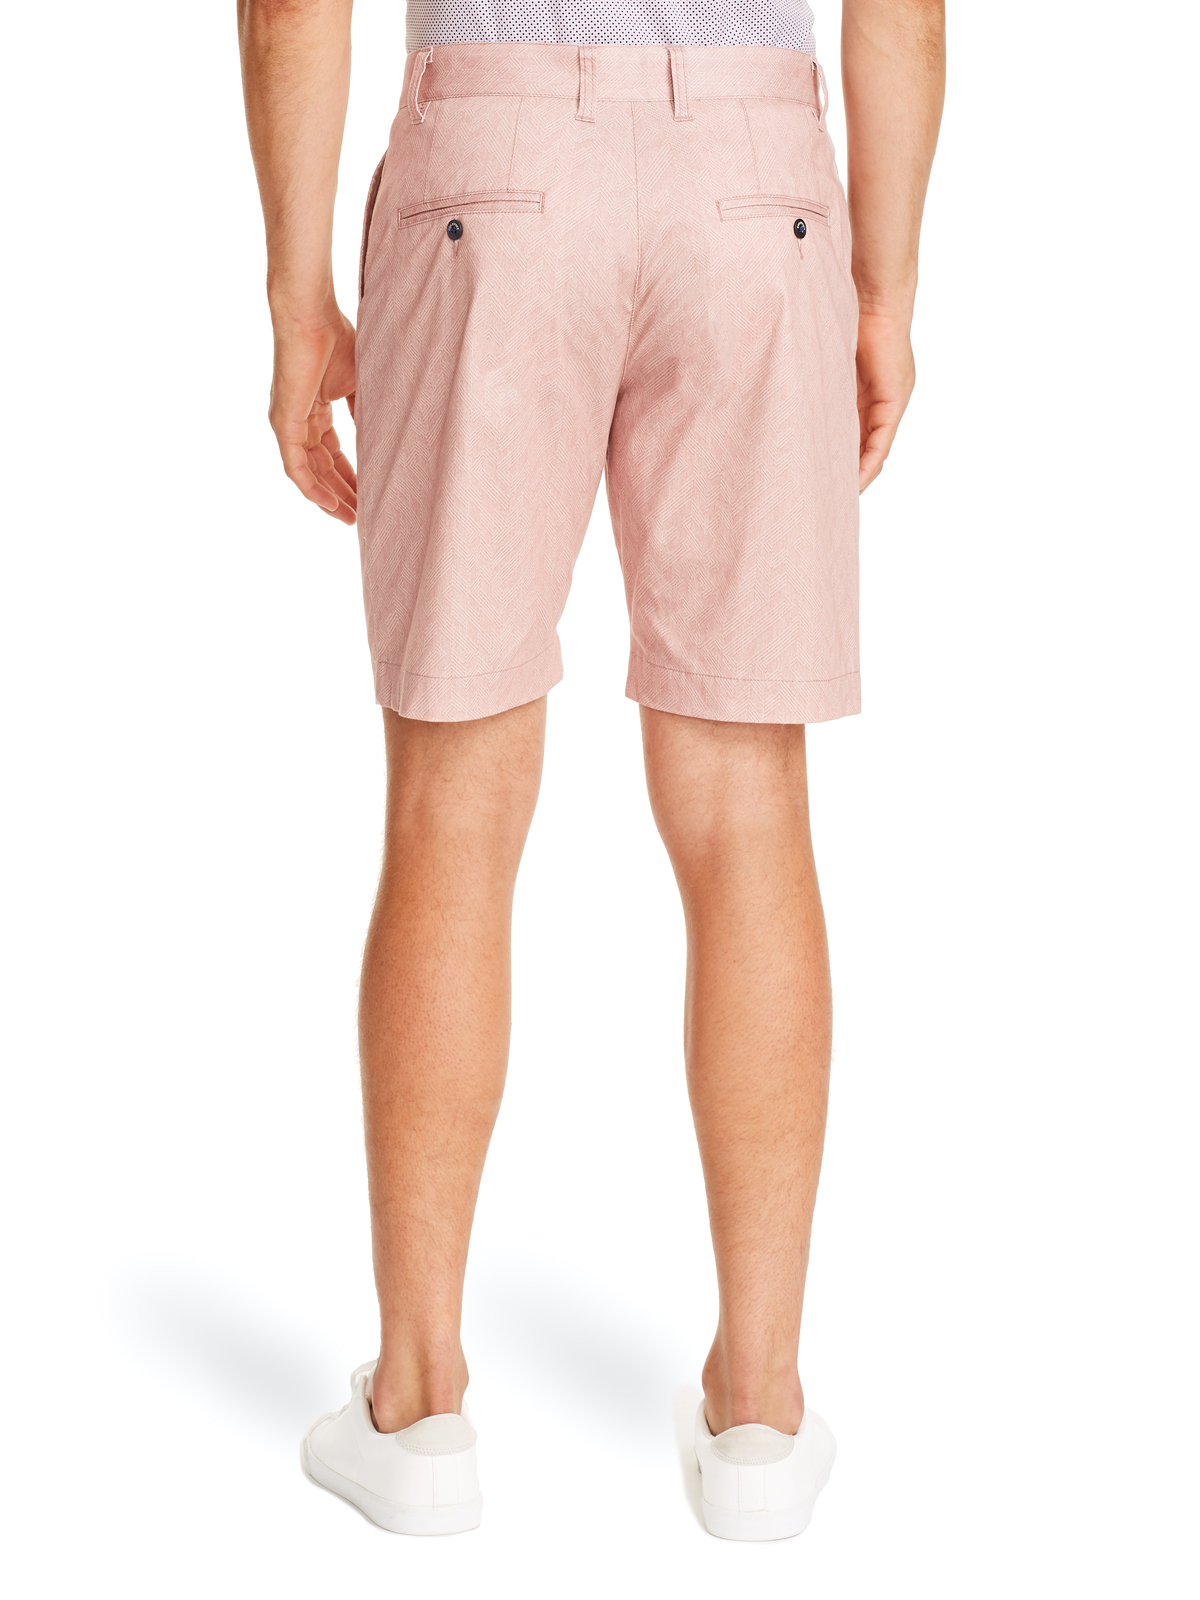 PINK TEXTURED SHORTS FOR MEN BACK VIEW